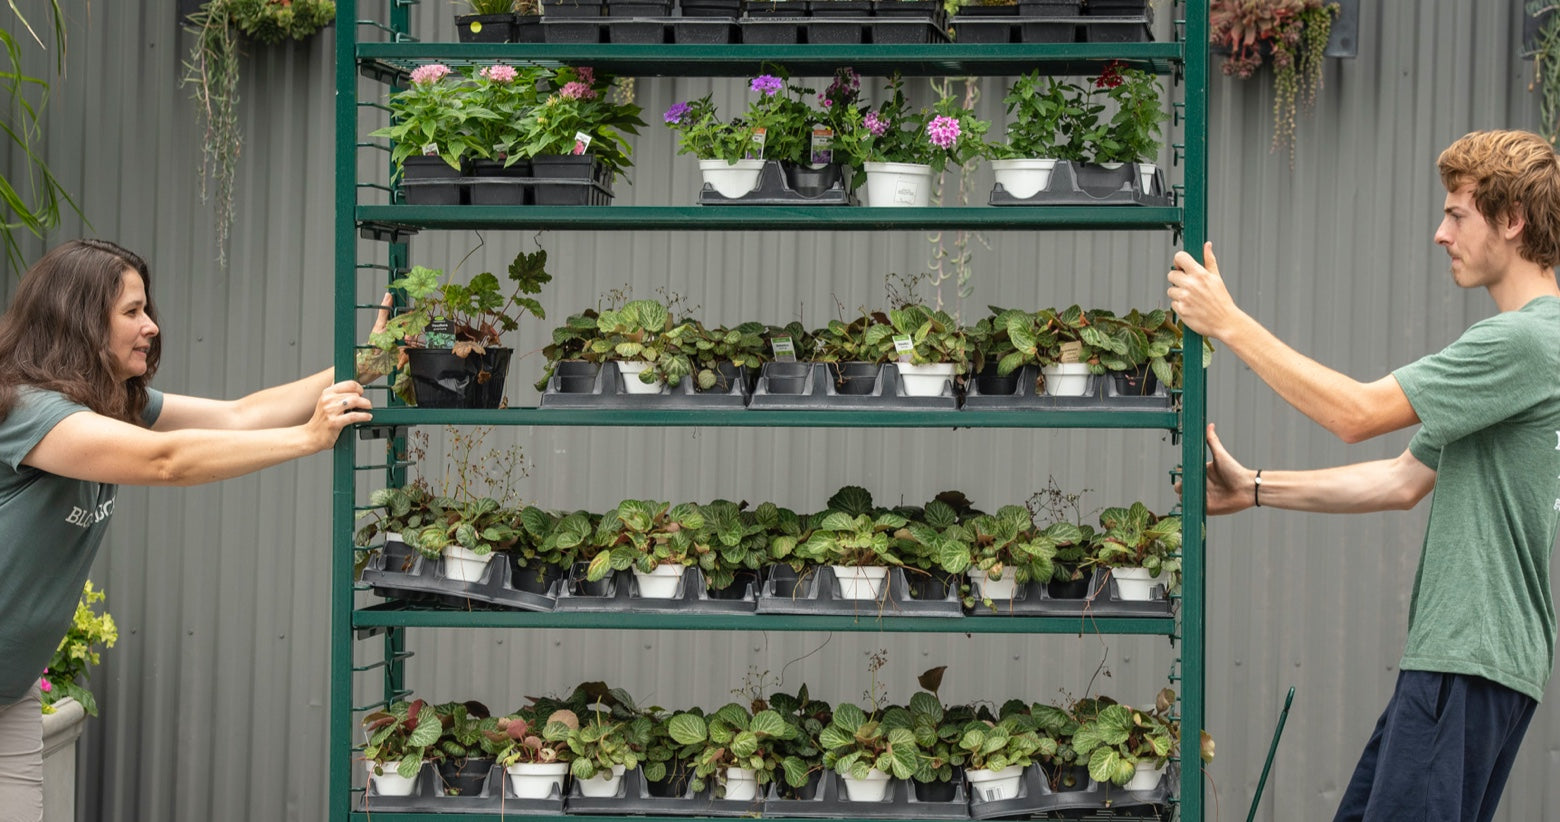 BloomBox employees pushing multi-tier cart of native plants